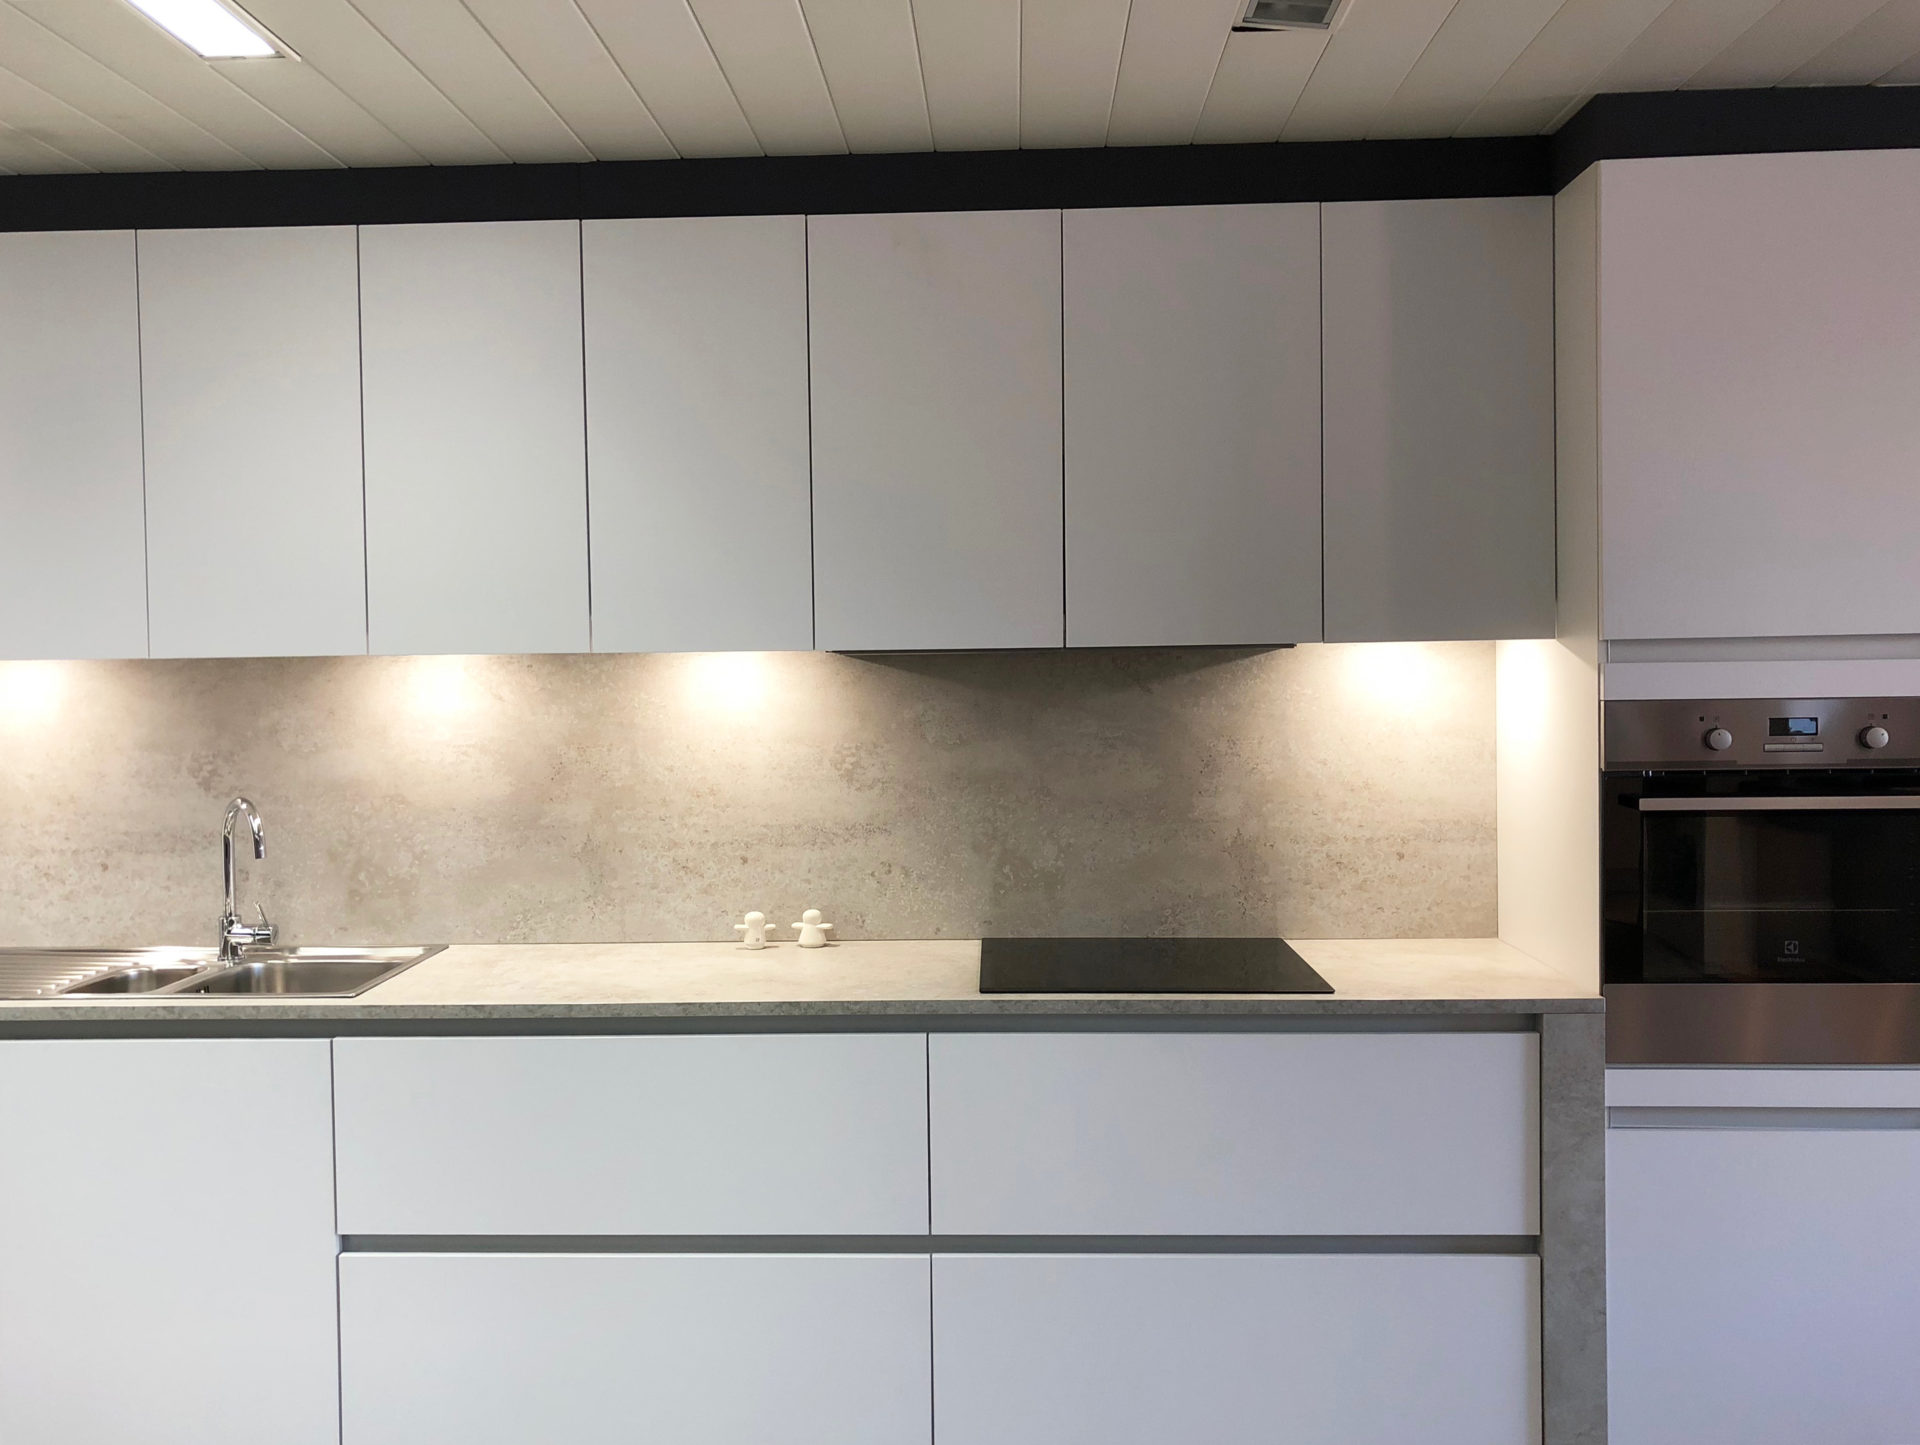 Showroomkeuken artic white